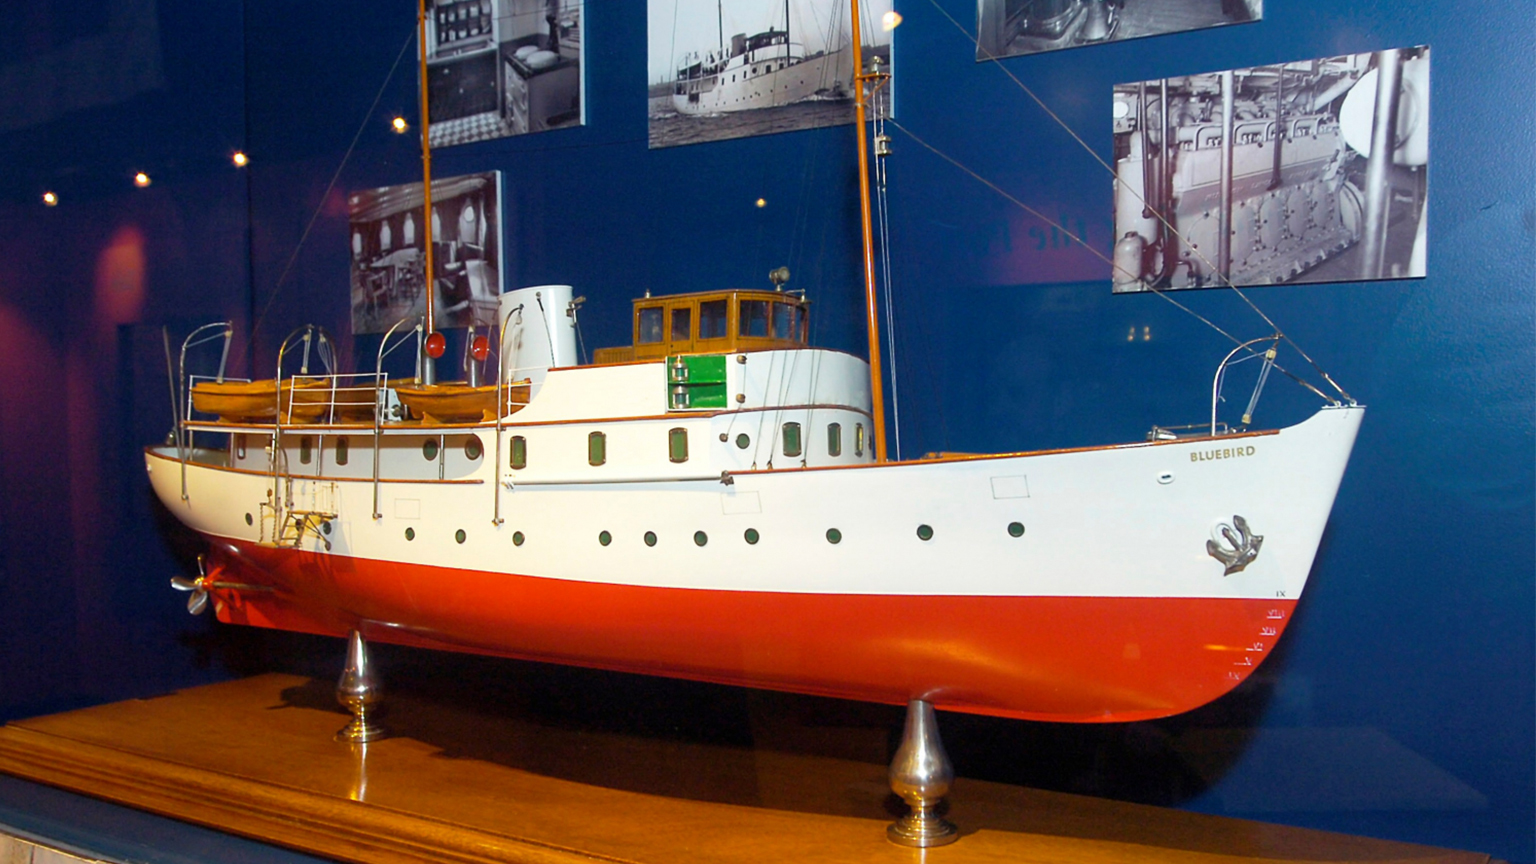 Model of Blue Bird. The actual ship was made in Goole in 1938, and owned by Sir Malcolm Campbell.